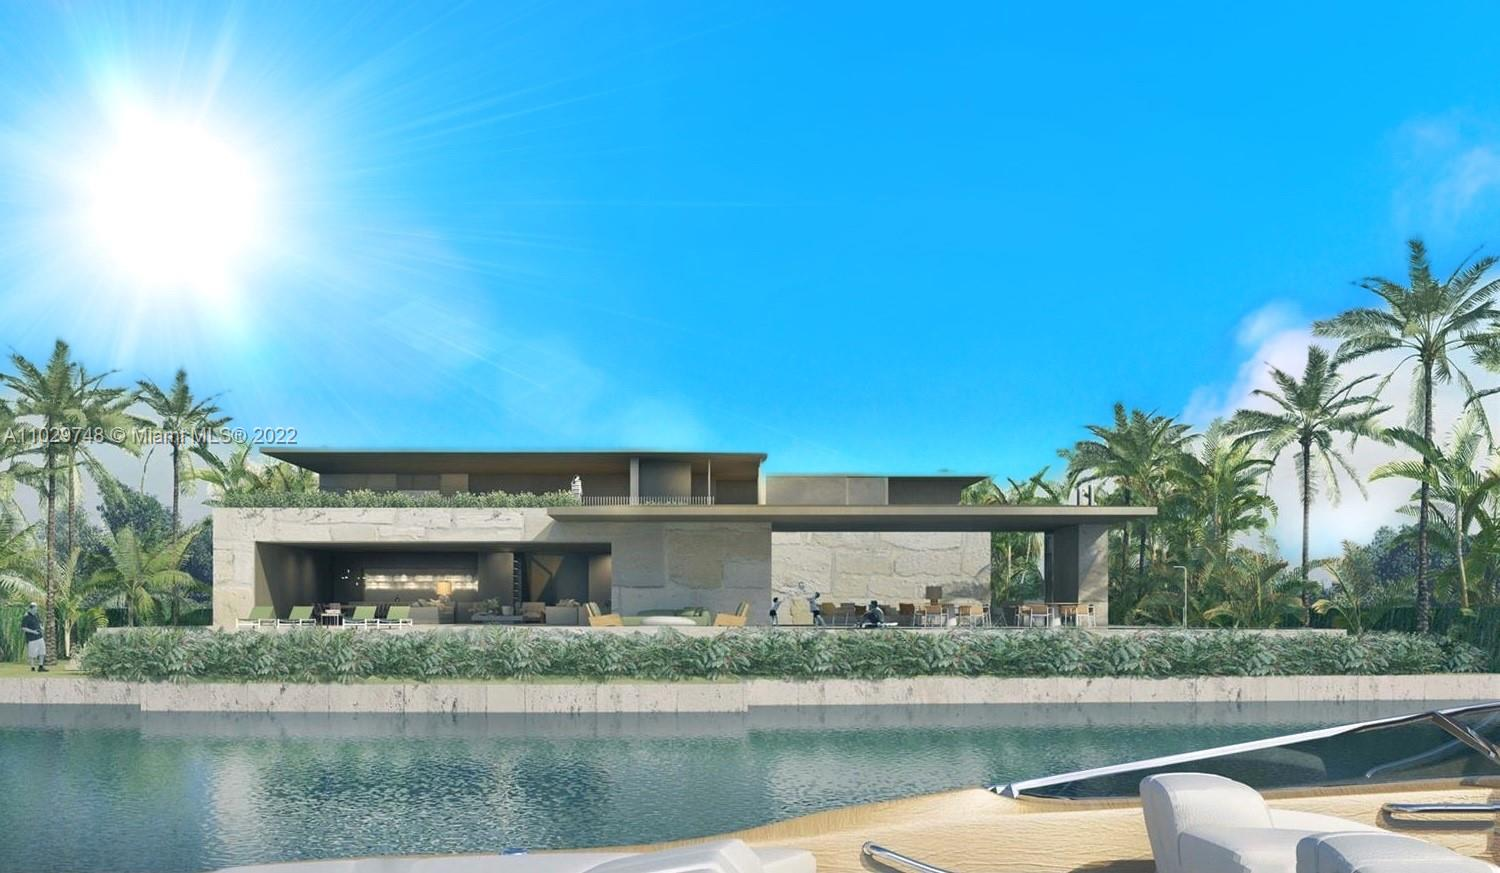 MASTERPIECE BY RENOWNED BRAZILIAN ARCHITECT STUDIO ARTHUR CASAS ON PRIME SOUTHEAST FACING DOUBLE LOT ON SAN MARINO ISLAND! A Rare Find on the Venetian Islands with 22,682 SF Lot Wrapped by 160 FT of waterfrontage. Large enough for this Brand New Horizontal Modern construction in Tasteful Brazilian Beach-Style that is influenced by a spirit both Modernist + Contemporary that is Brazilian but also Cosmopolitan. City of Miami Beach Approved plans include a 6 bedrooms + 6.5 baths Estate Home with staff quarters, media room & gym encompassing 10,500 SF of Interior Living Space. Home's Shell is mid-way completed. This gives you the opportunity to customize your interiors to your Desire. Full set of plans and permits will be delivered with the property. EZ to show!